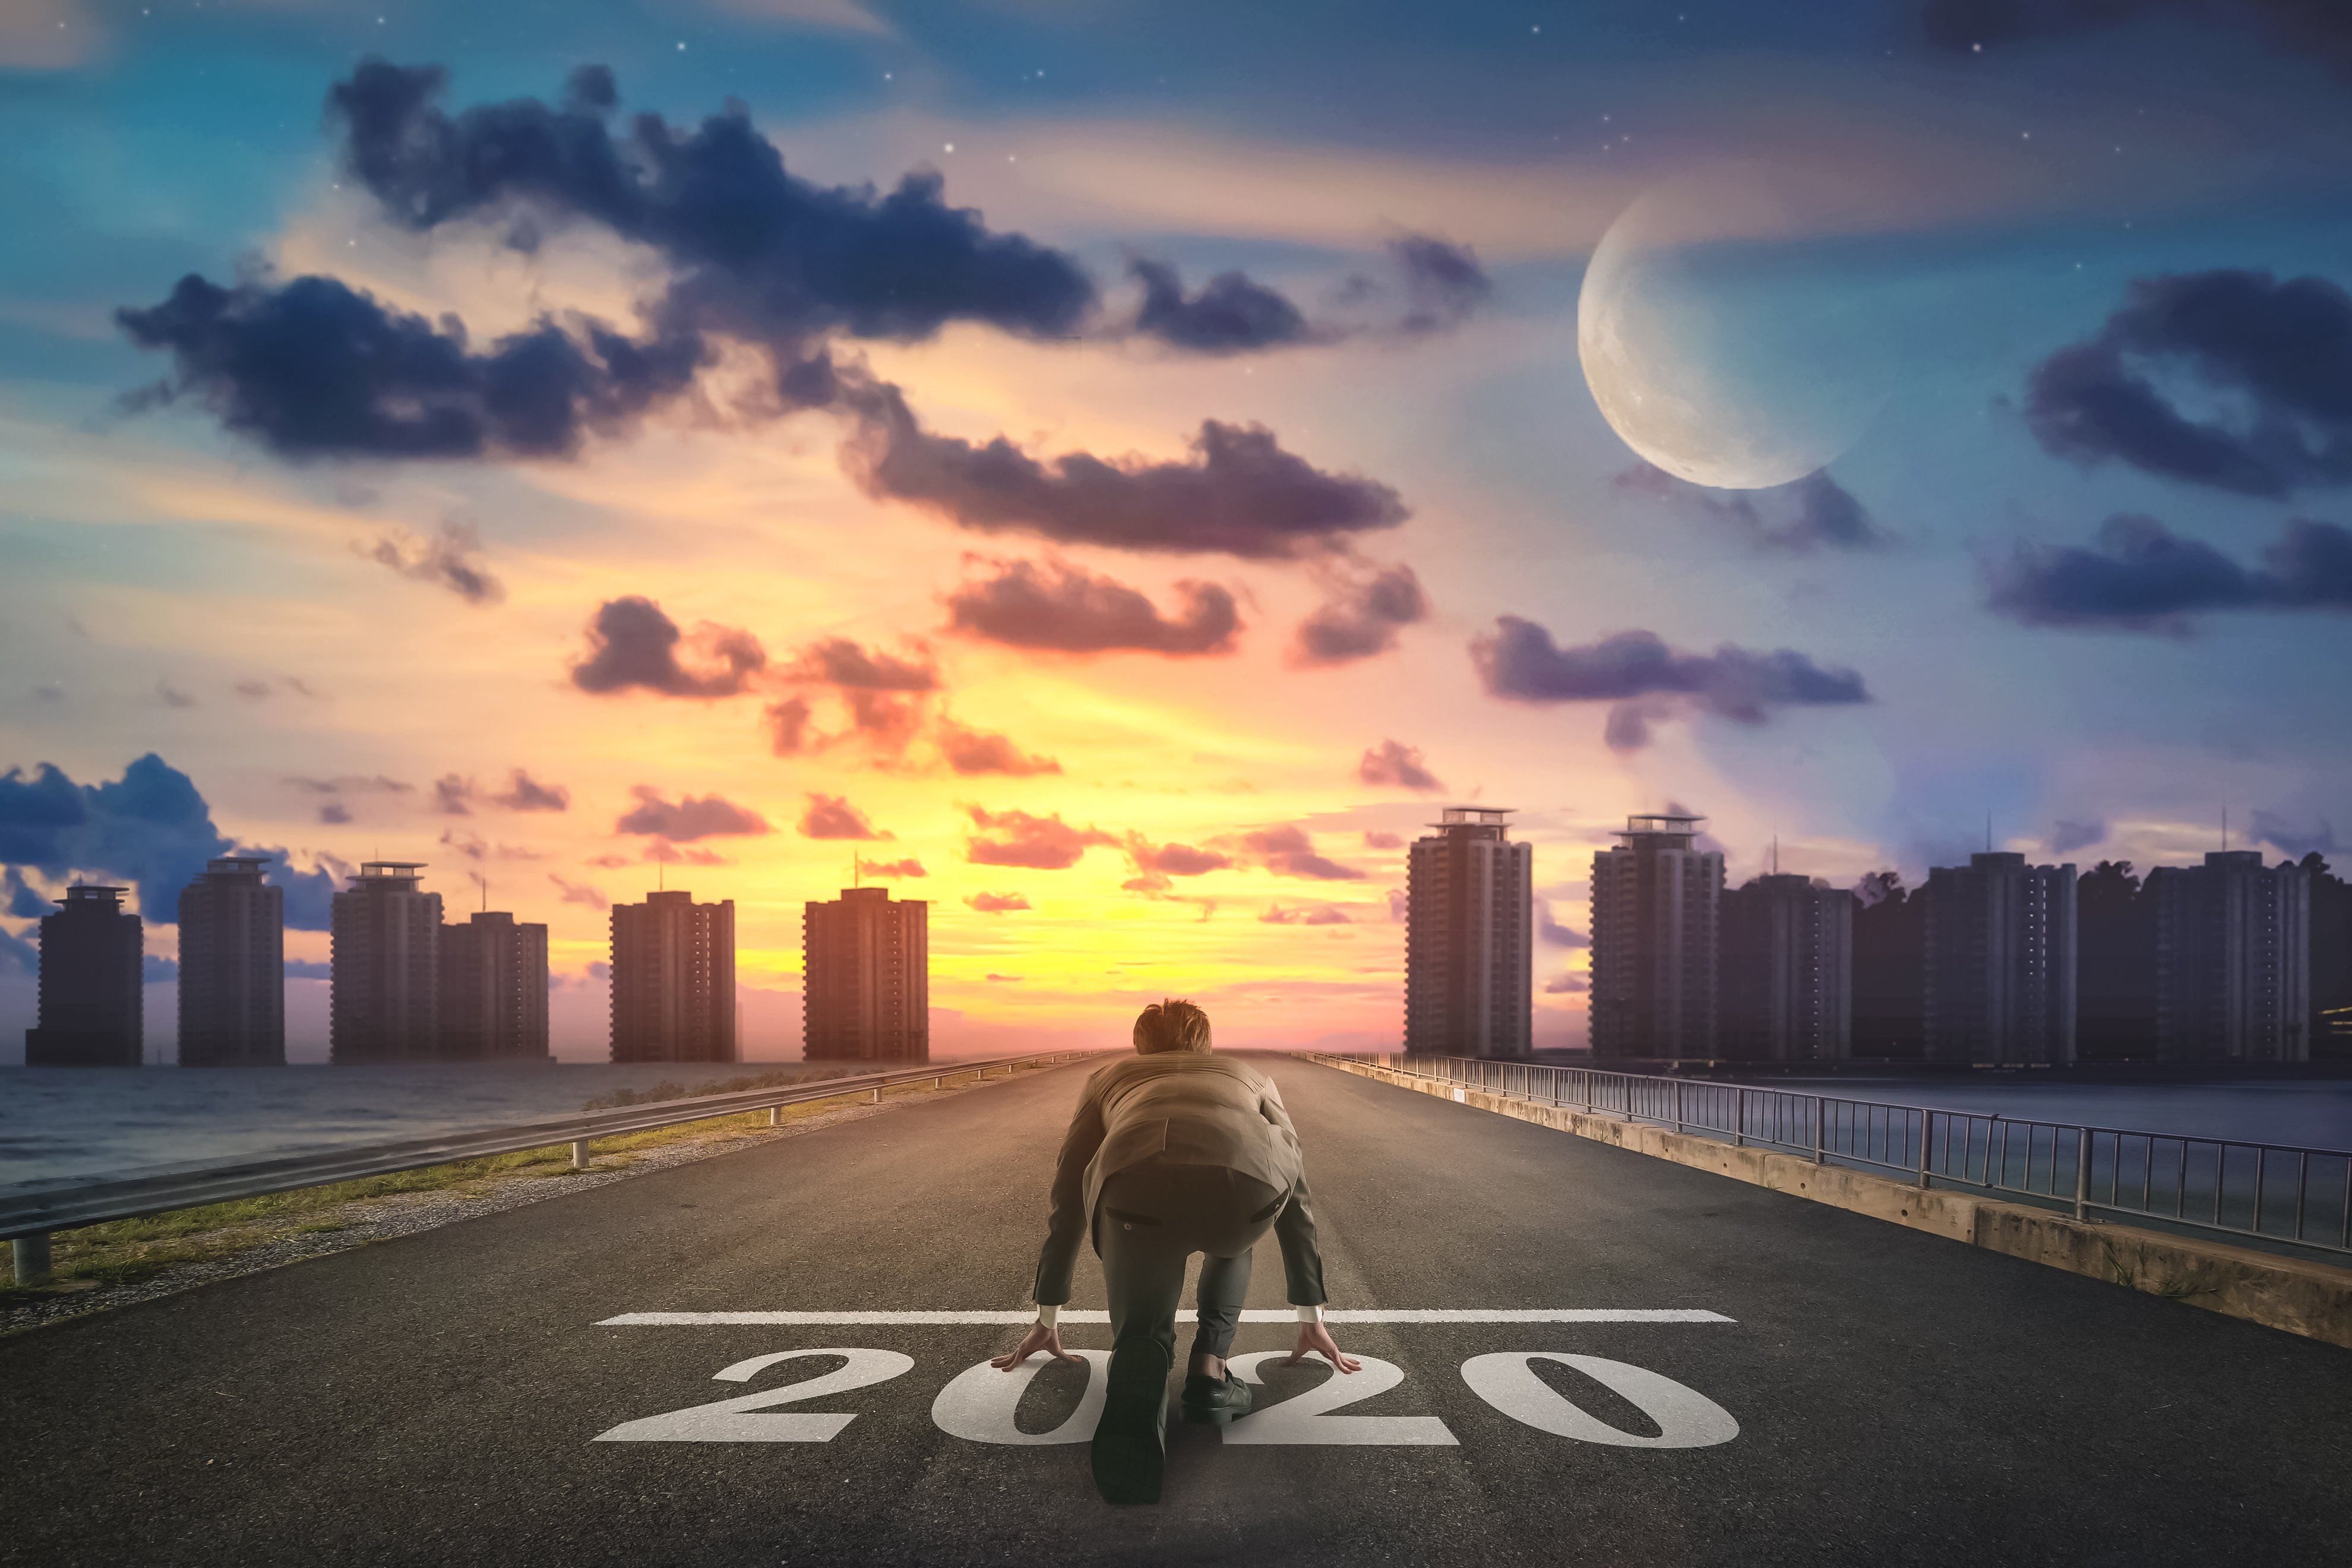 person at a 2020 starting line, looking into a sunset above a city silhouette